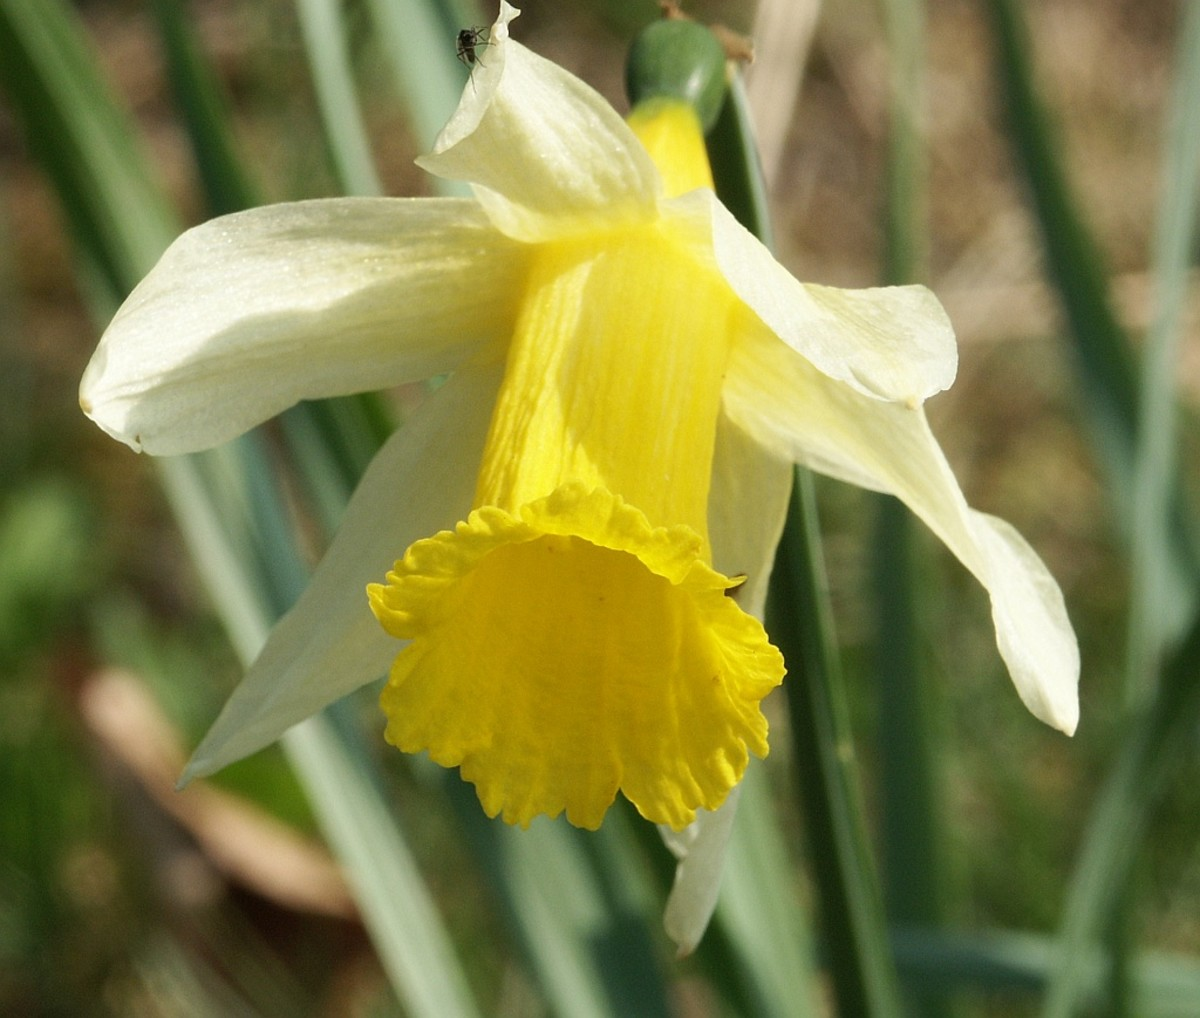 Daffodils are a spring flower. They repel unwanted animals and can protect your other flowers from their untimely demise.